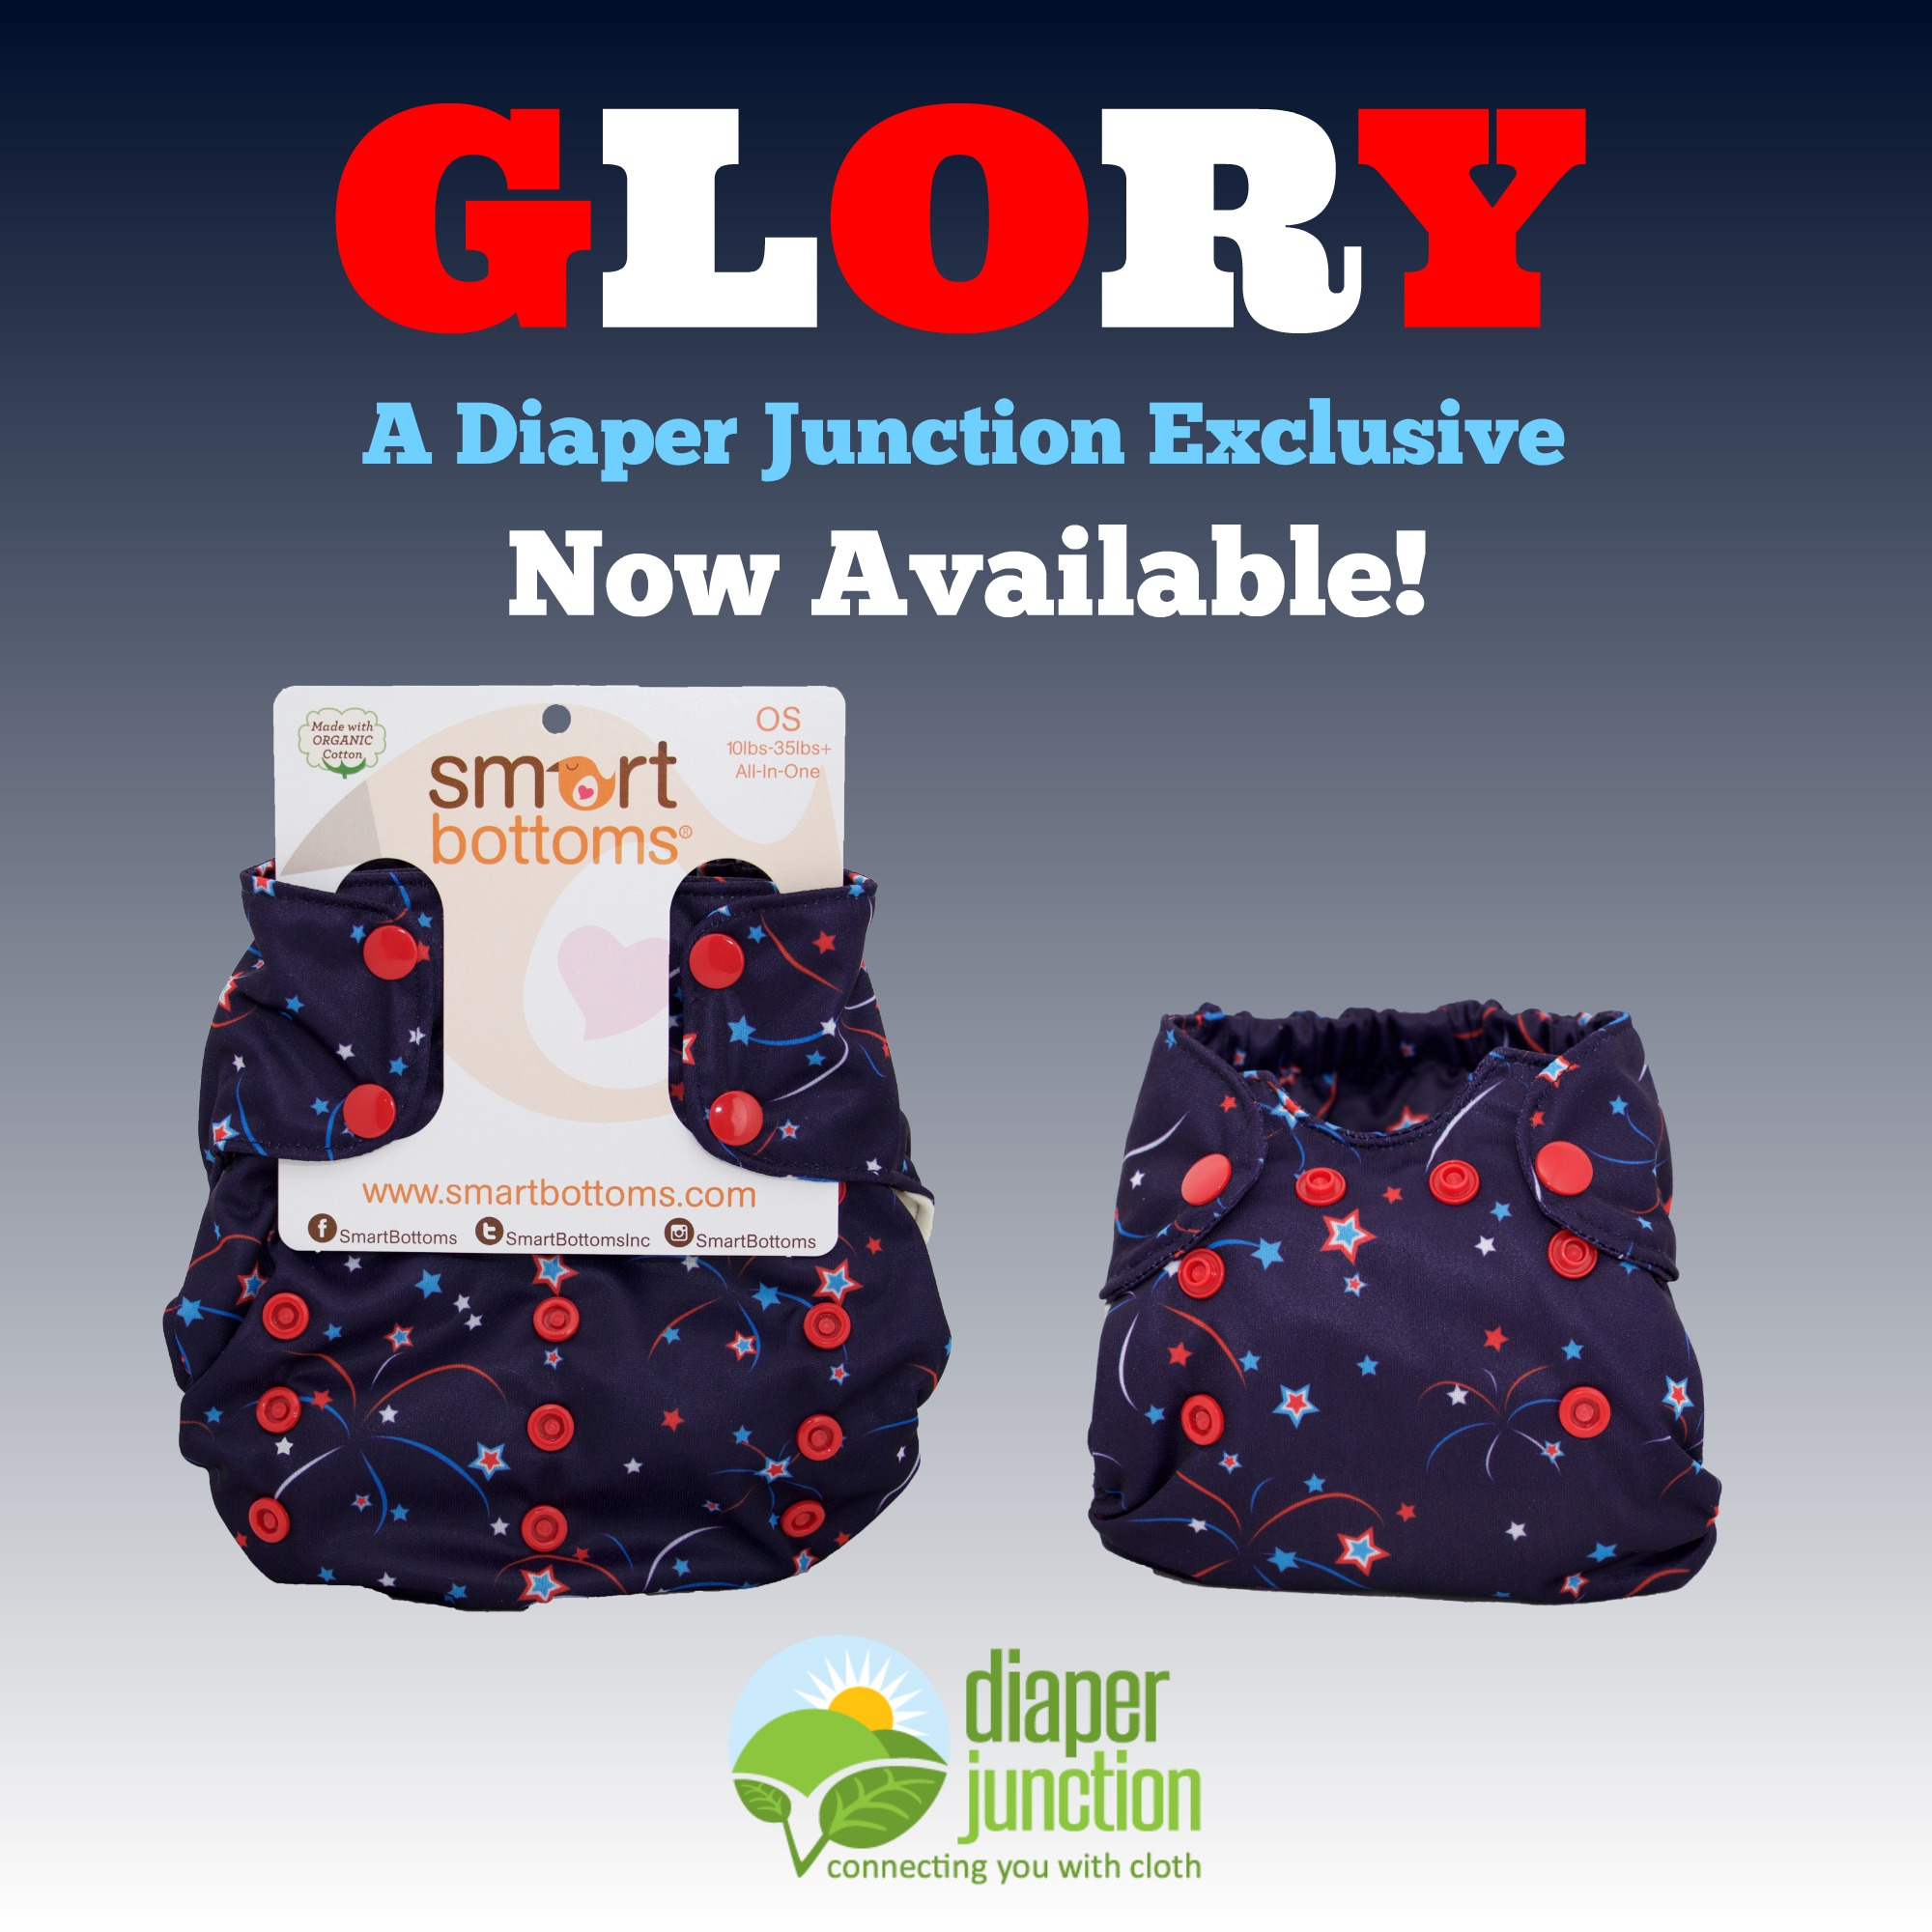 Glory, a Diaper Junction Exclusive from Smart Bottoms